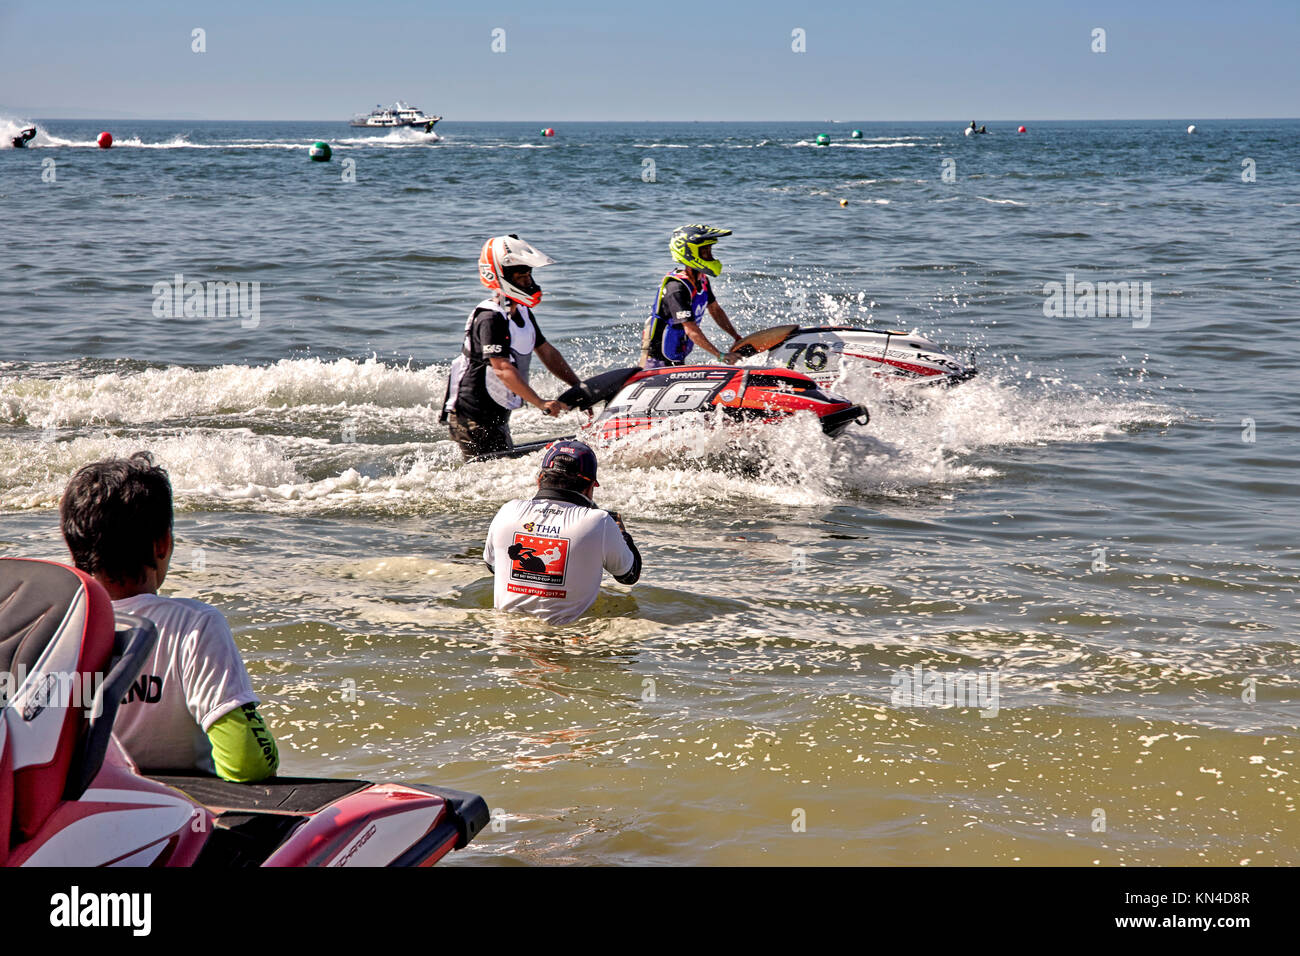 Intrepid and resourceful photographer on location and  waist deep in water taking photos at a Jet Ski water sport - Stock Image